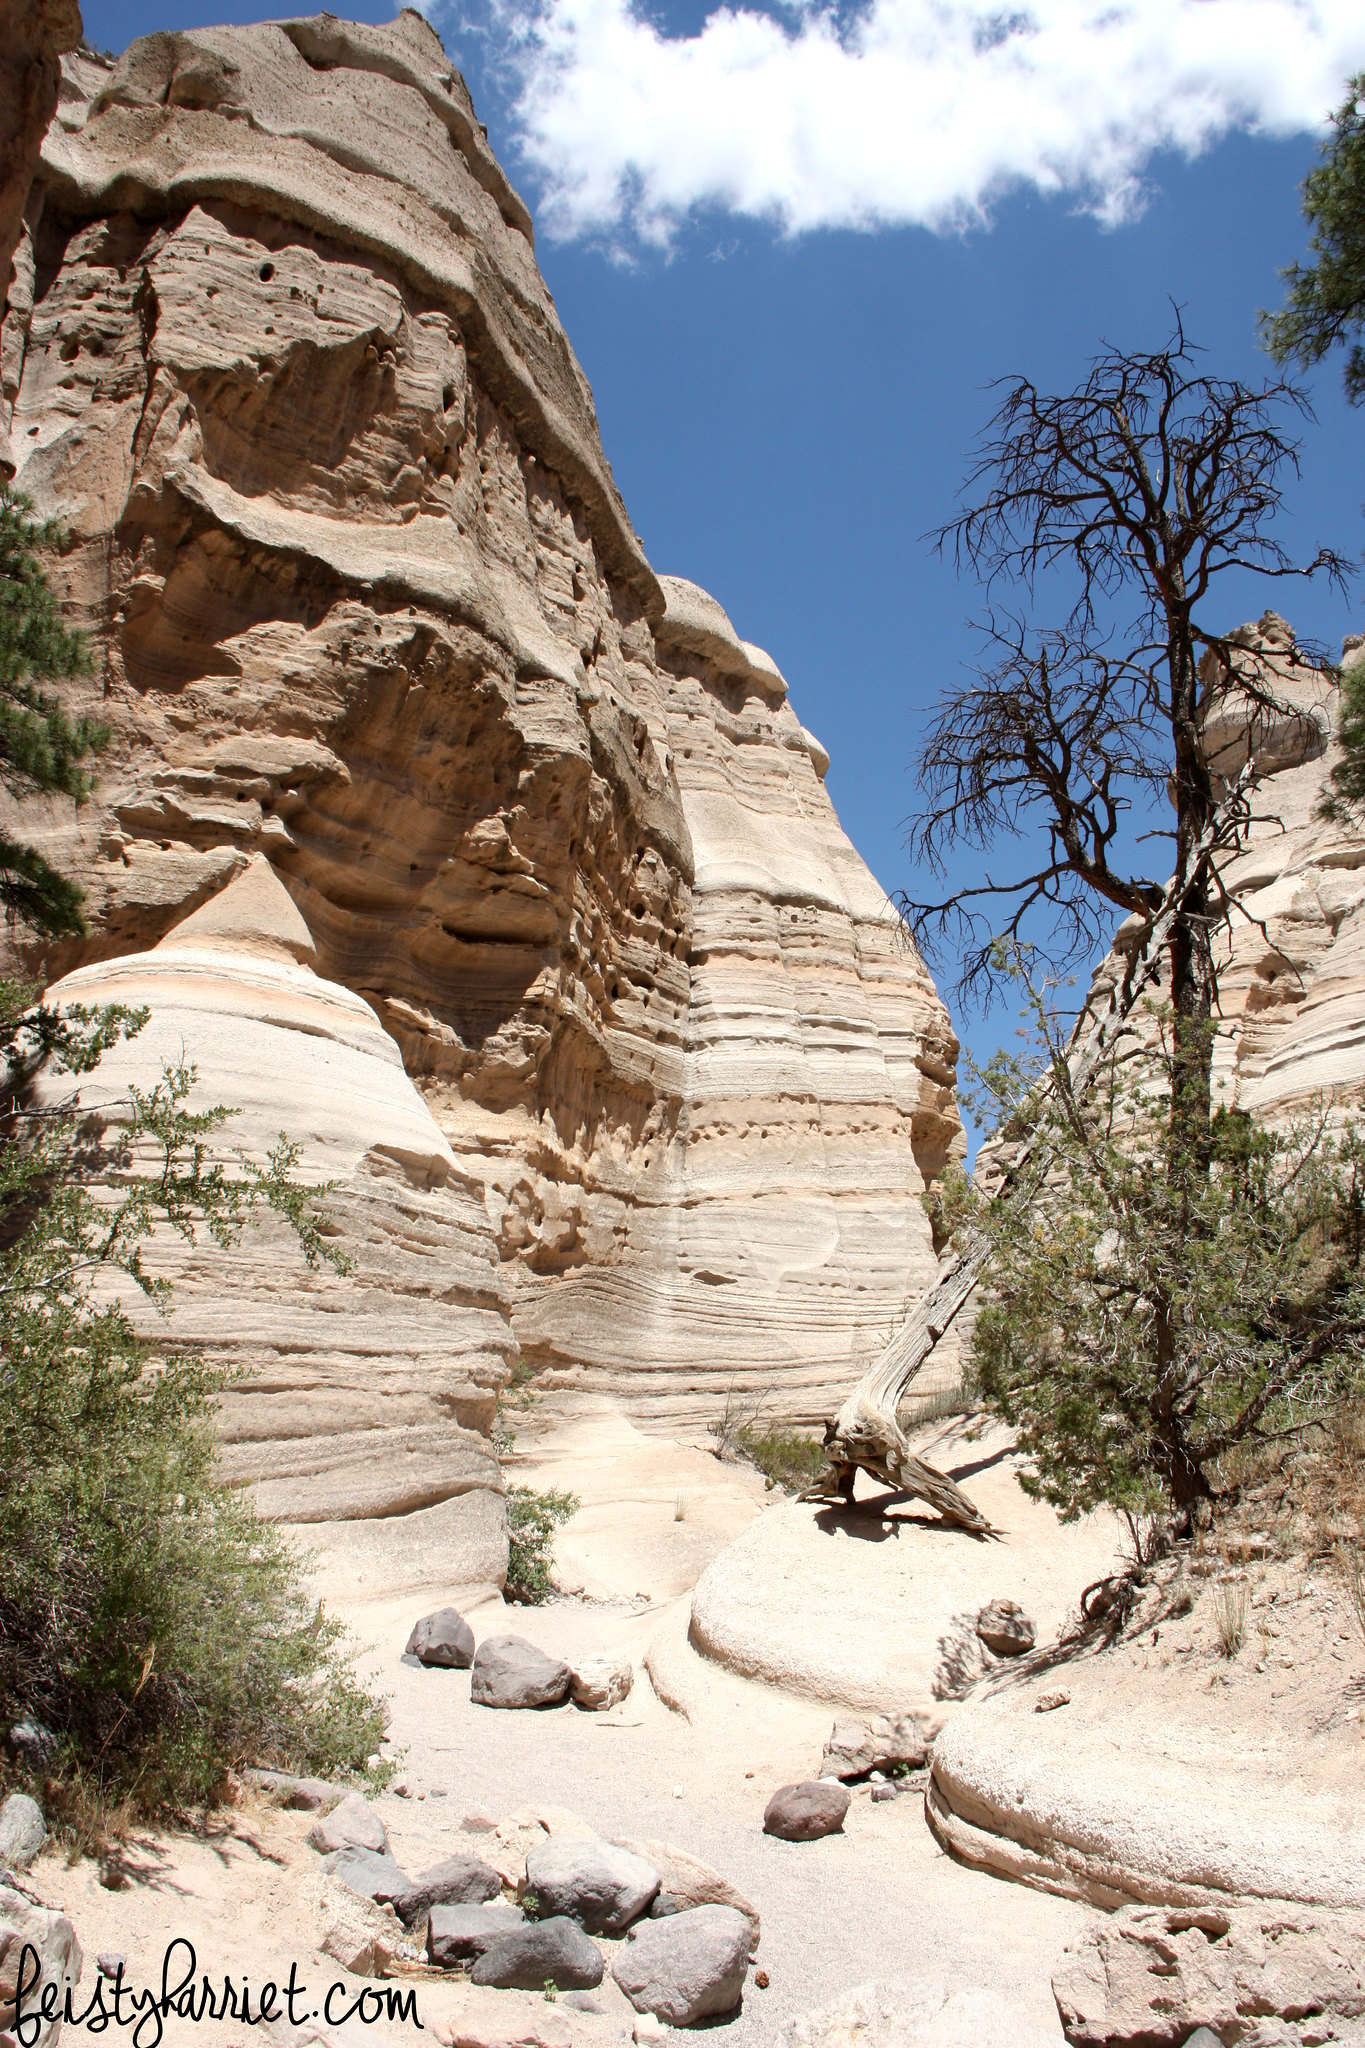 Kasha-Katuwe Tent Rocks NM_feistyharriet_July 2016 (2)